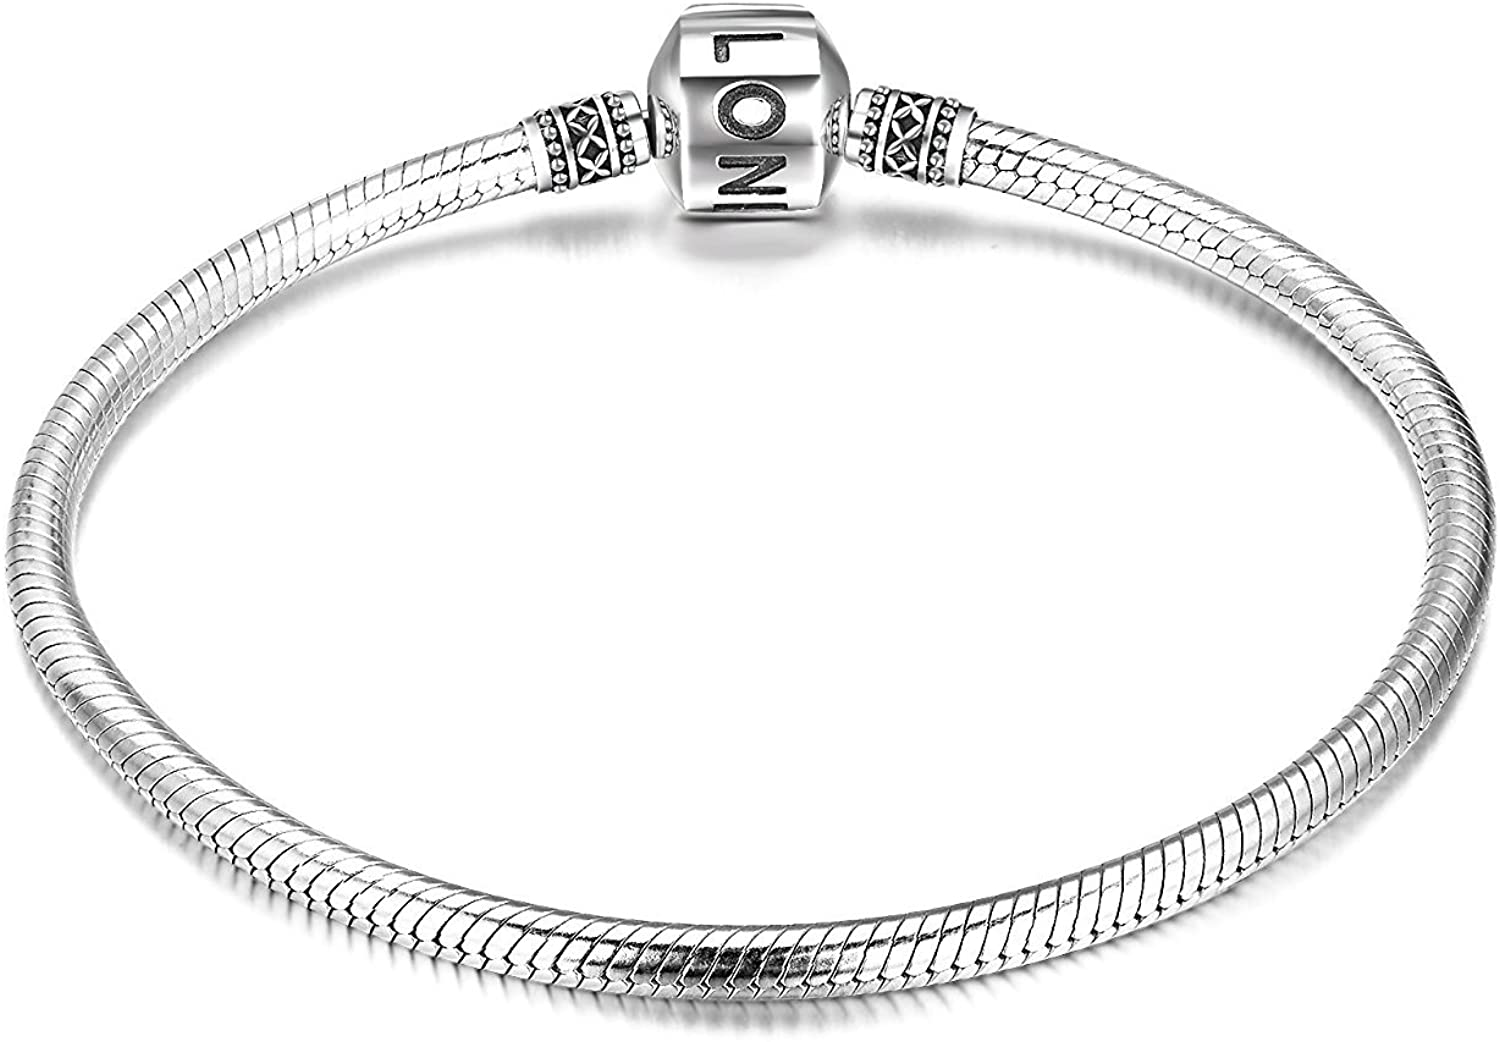 Genuine Charm Bracelet 925 Sterling Silver Snake Chain Bangle Barrel Clasp Jewelry Fit Pandora Charm Birthday Gift for Women… (8.3 inches/21 cm): Clothing